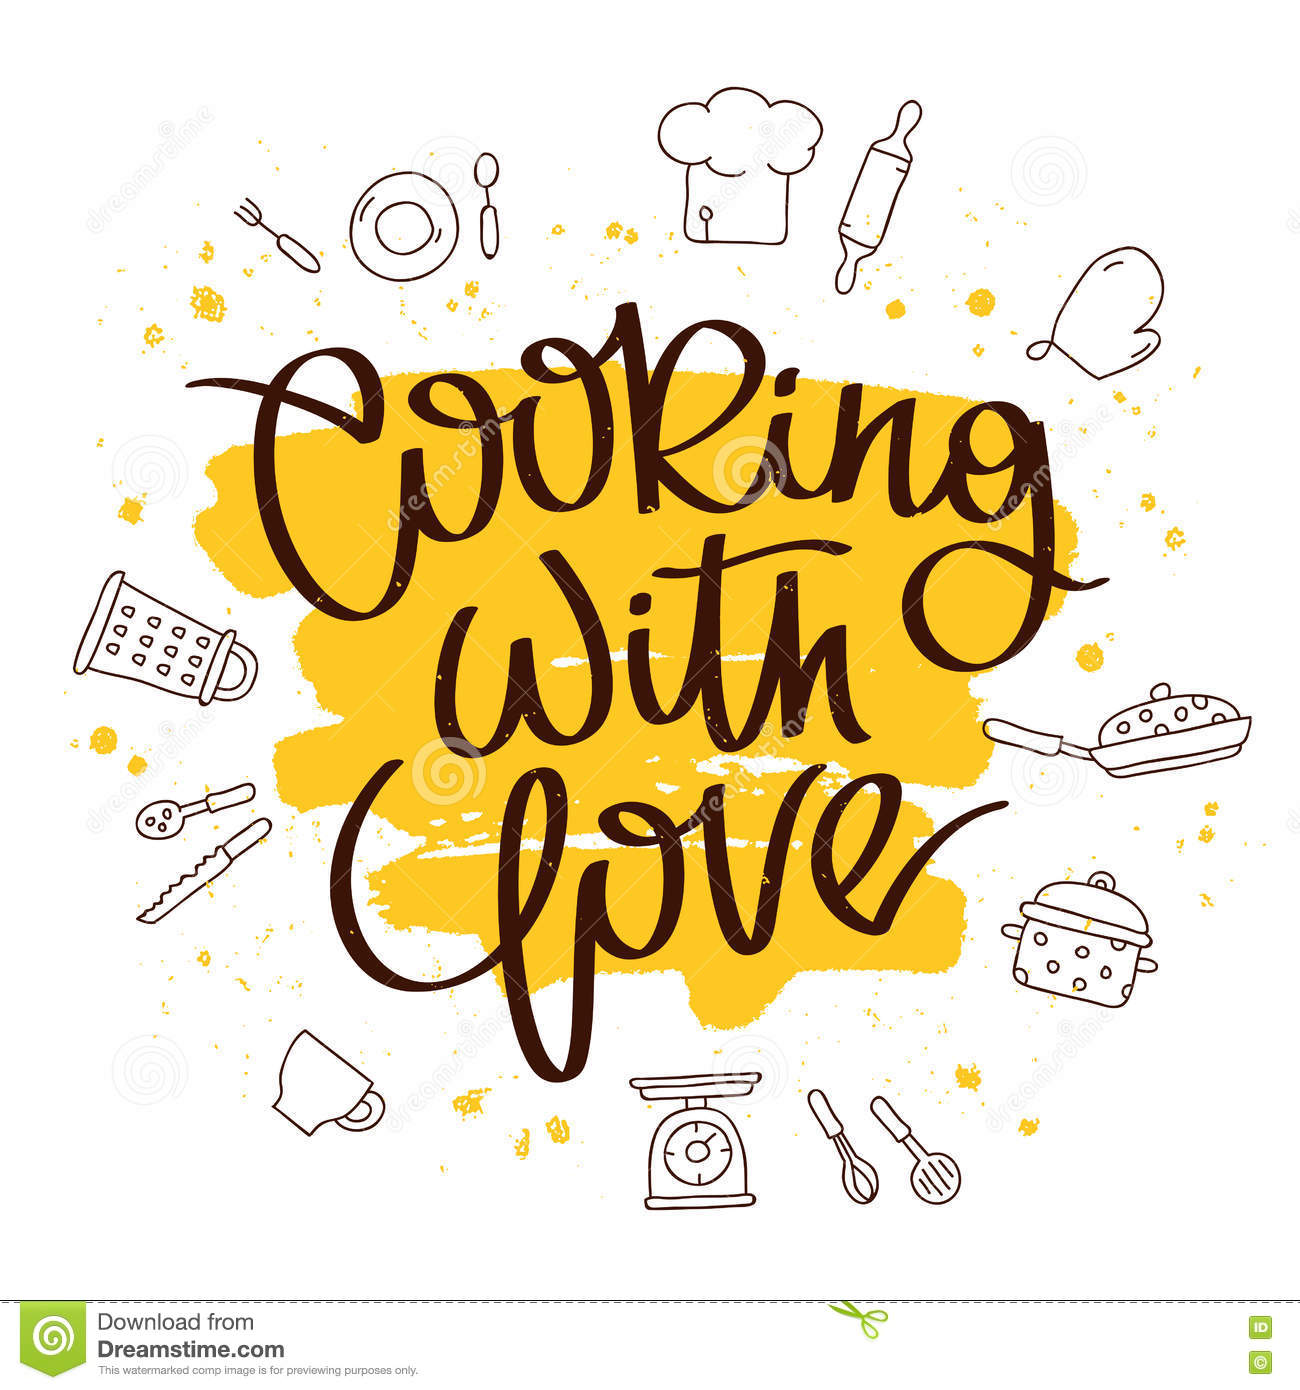 Quote Cooking with love stock vector. Illustration of icons - 74288694